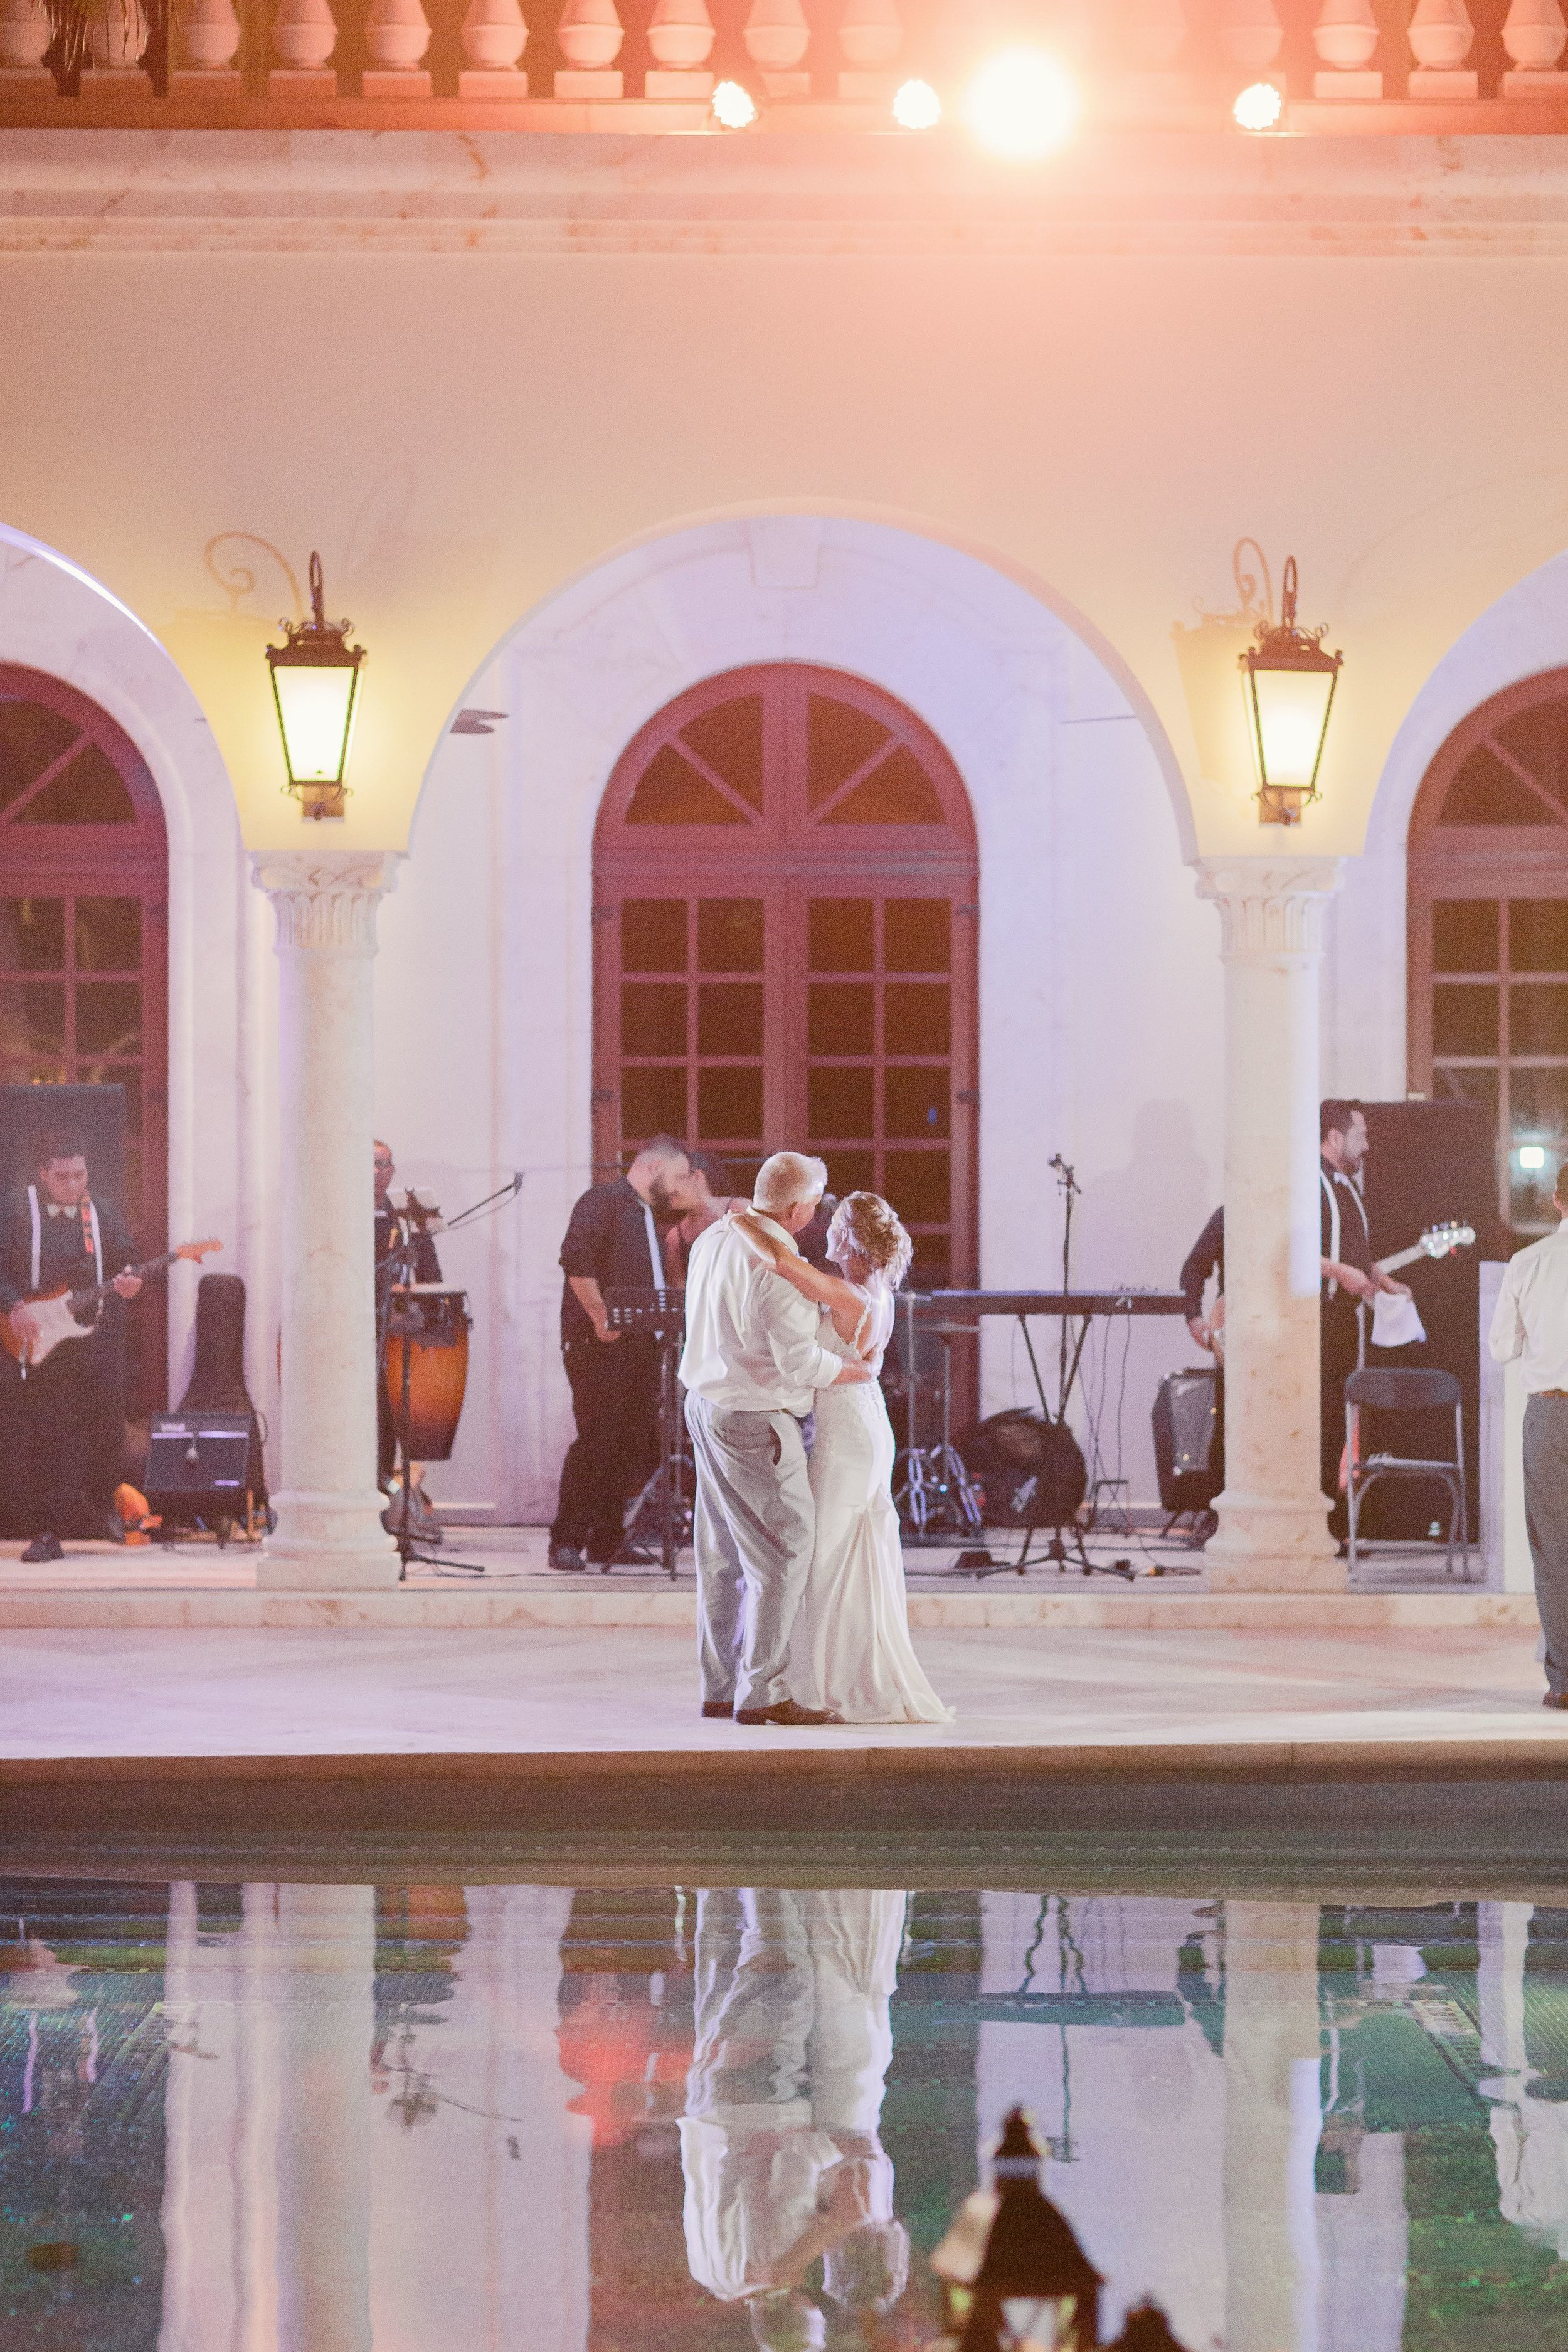 cancun-wedding-venue-villa-la-joya-973 copy-websize.jpg